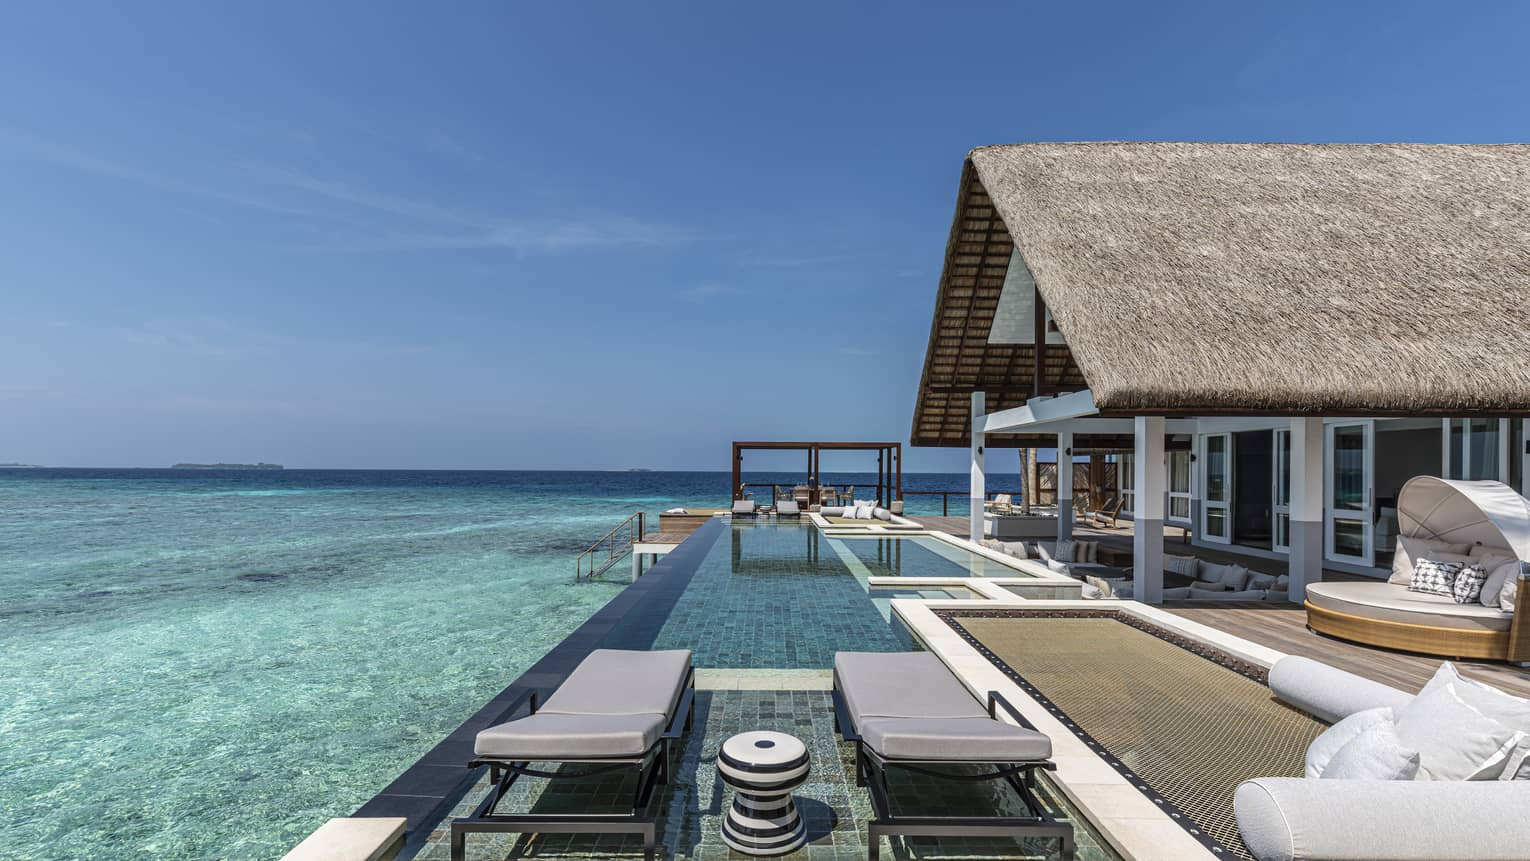 Modern overwater bungalow's expansive deck, with two chaise lounges and infinity pool